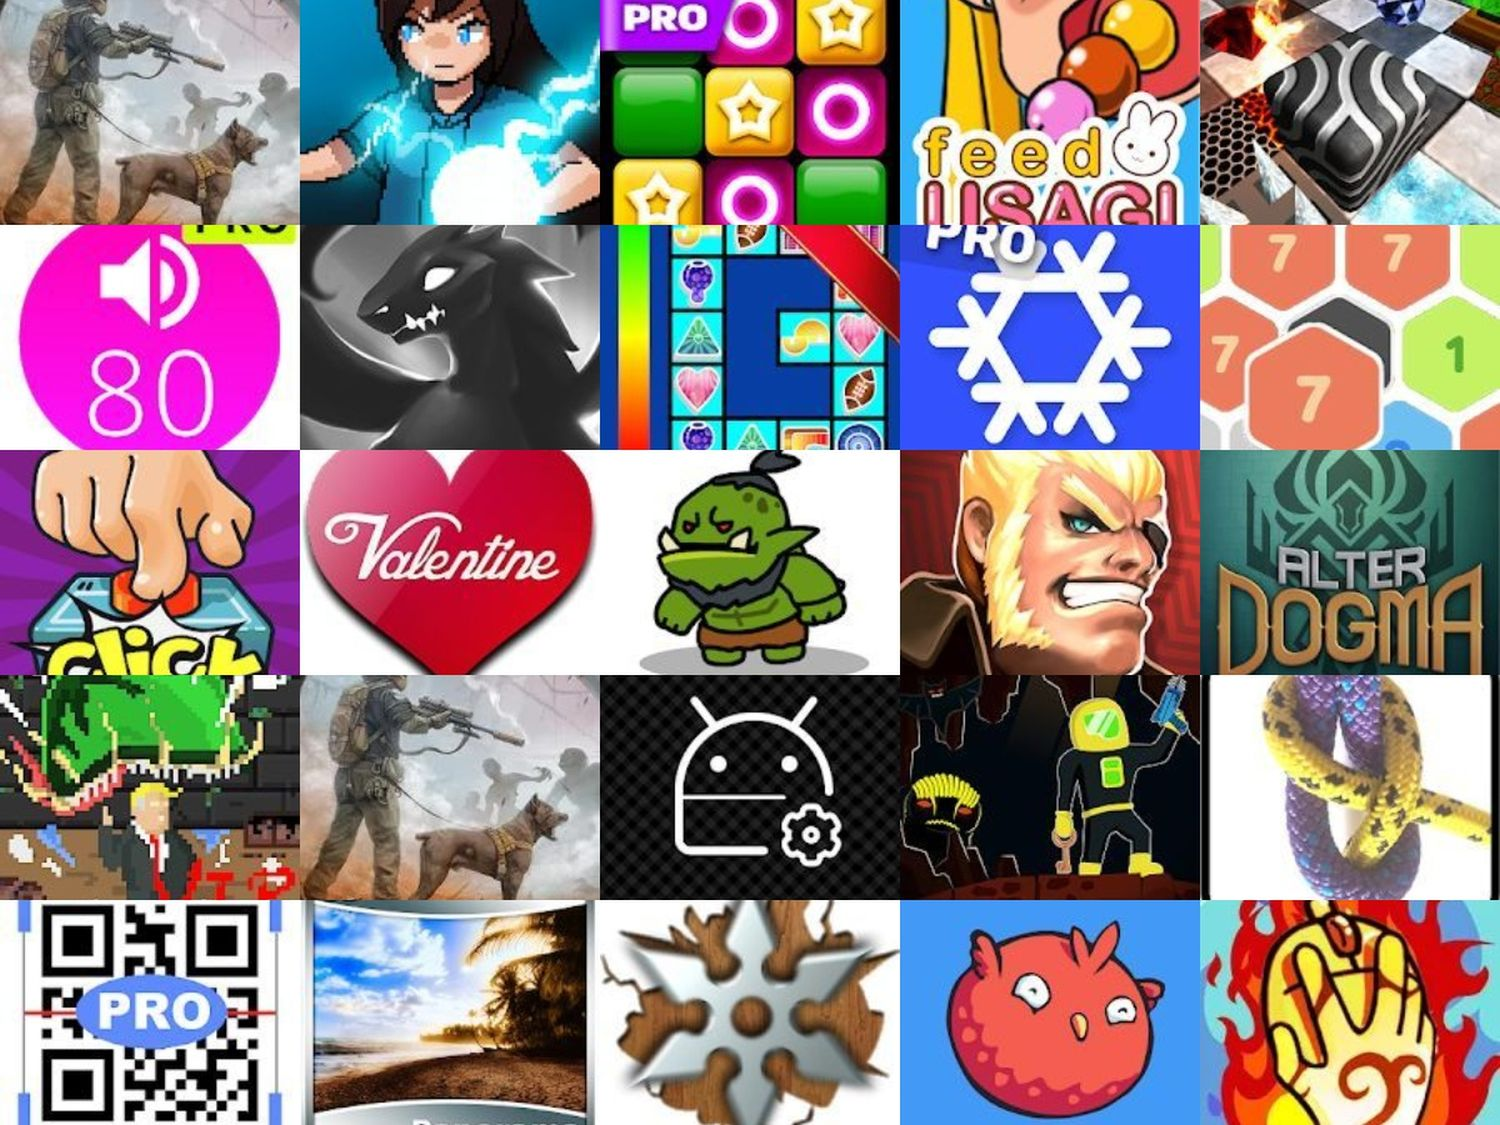 apps 02.02.2020